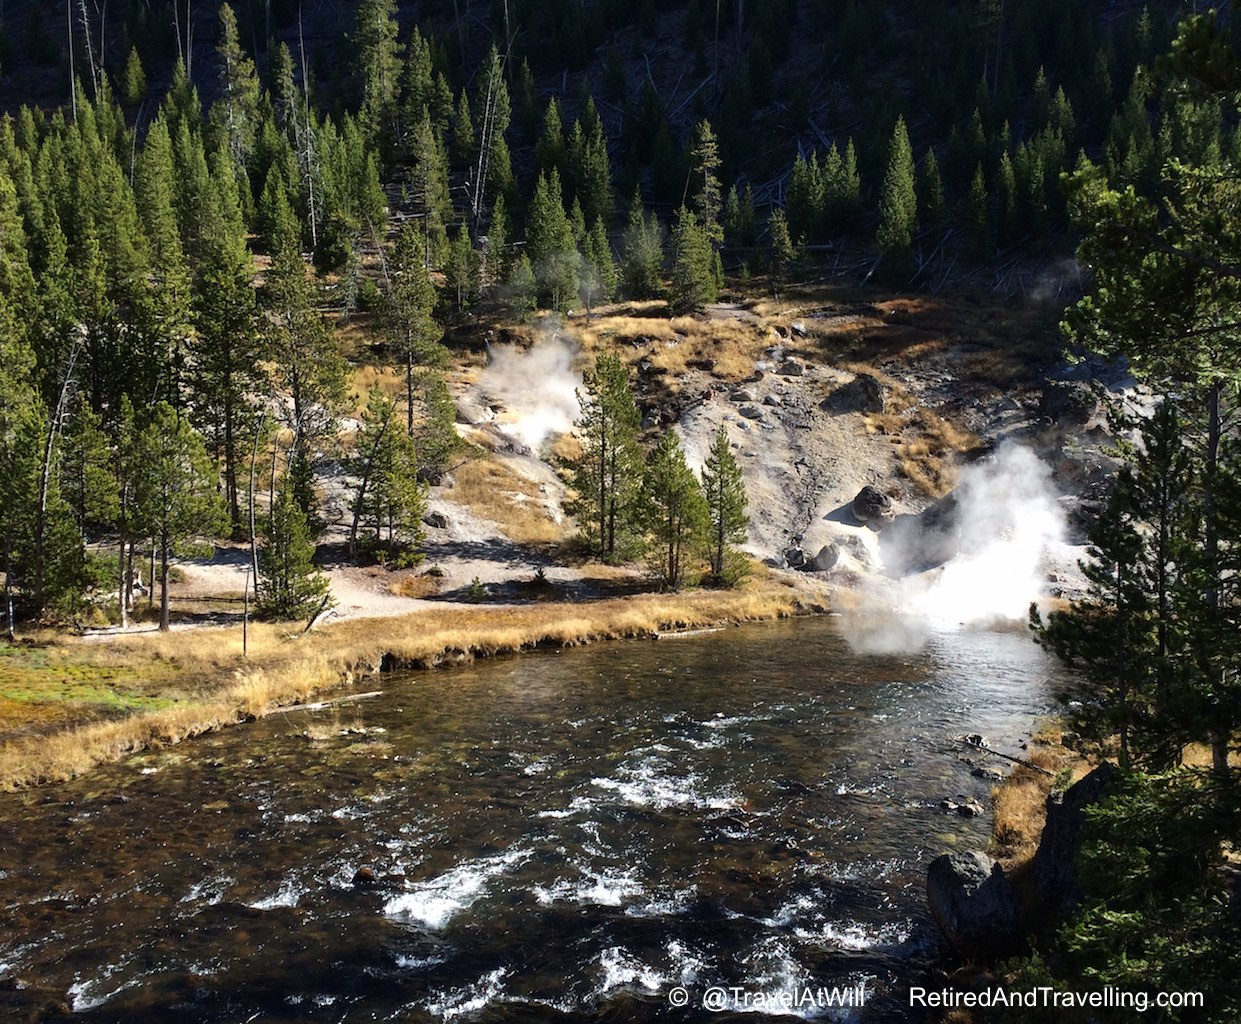 Exploring the Parks - Tips For Visiting the National Parks.jpg